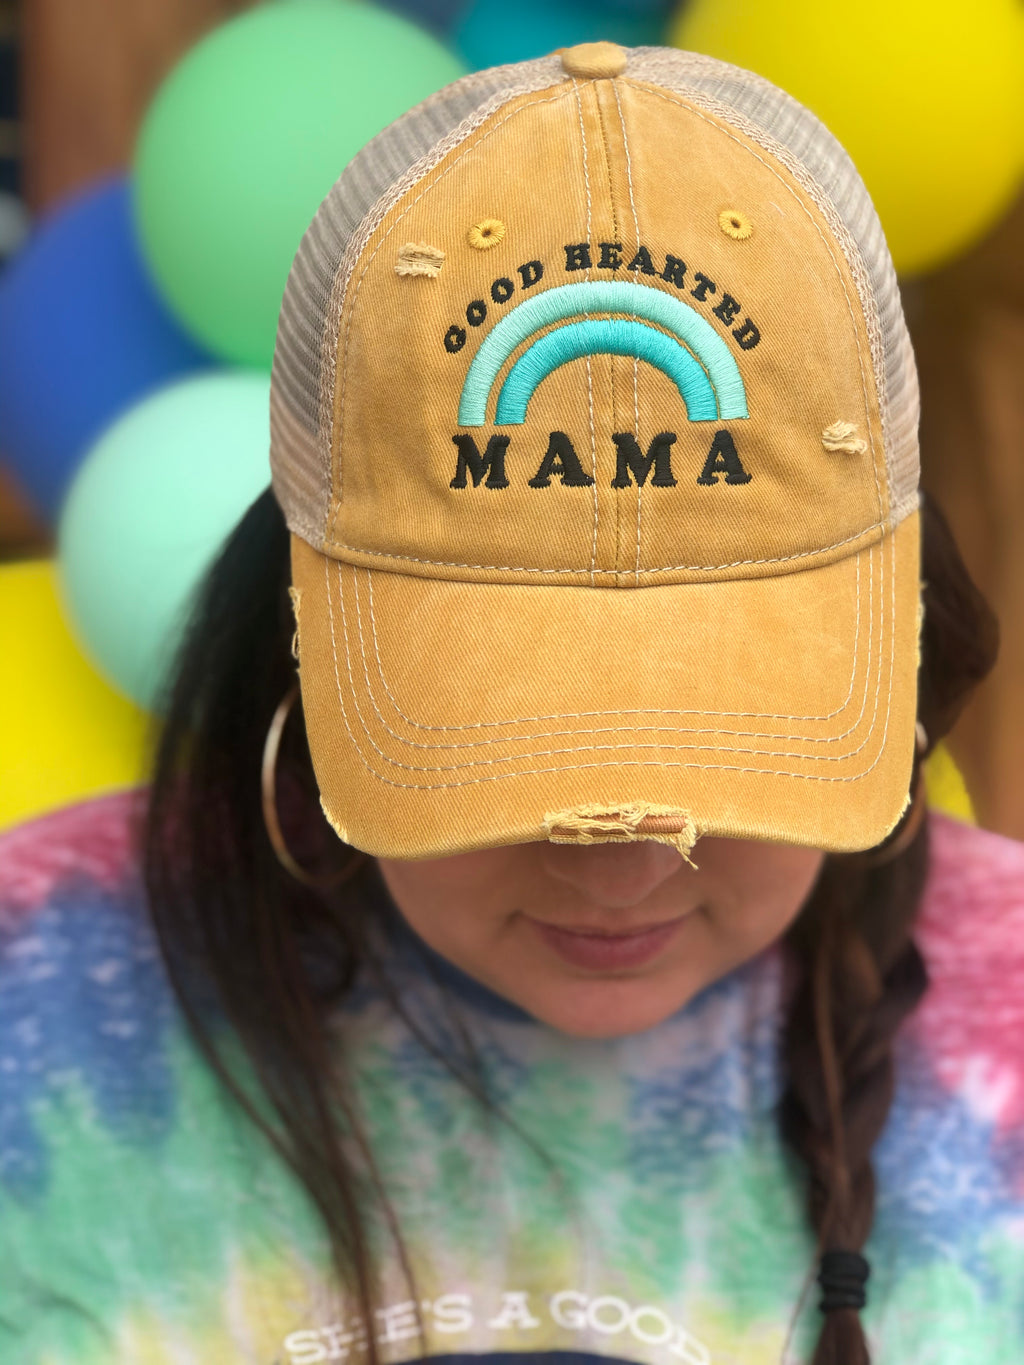 Good Hearted Mama Cap